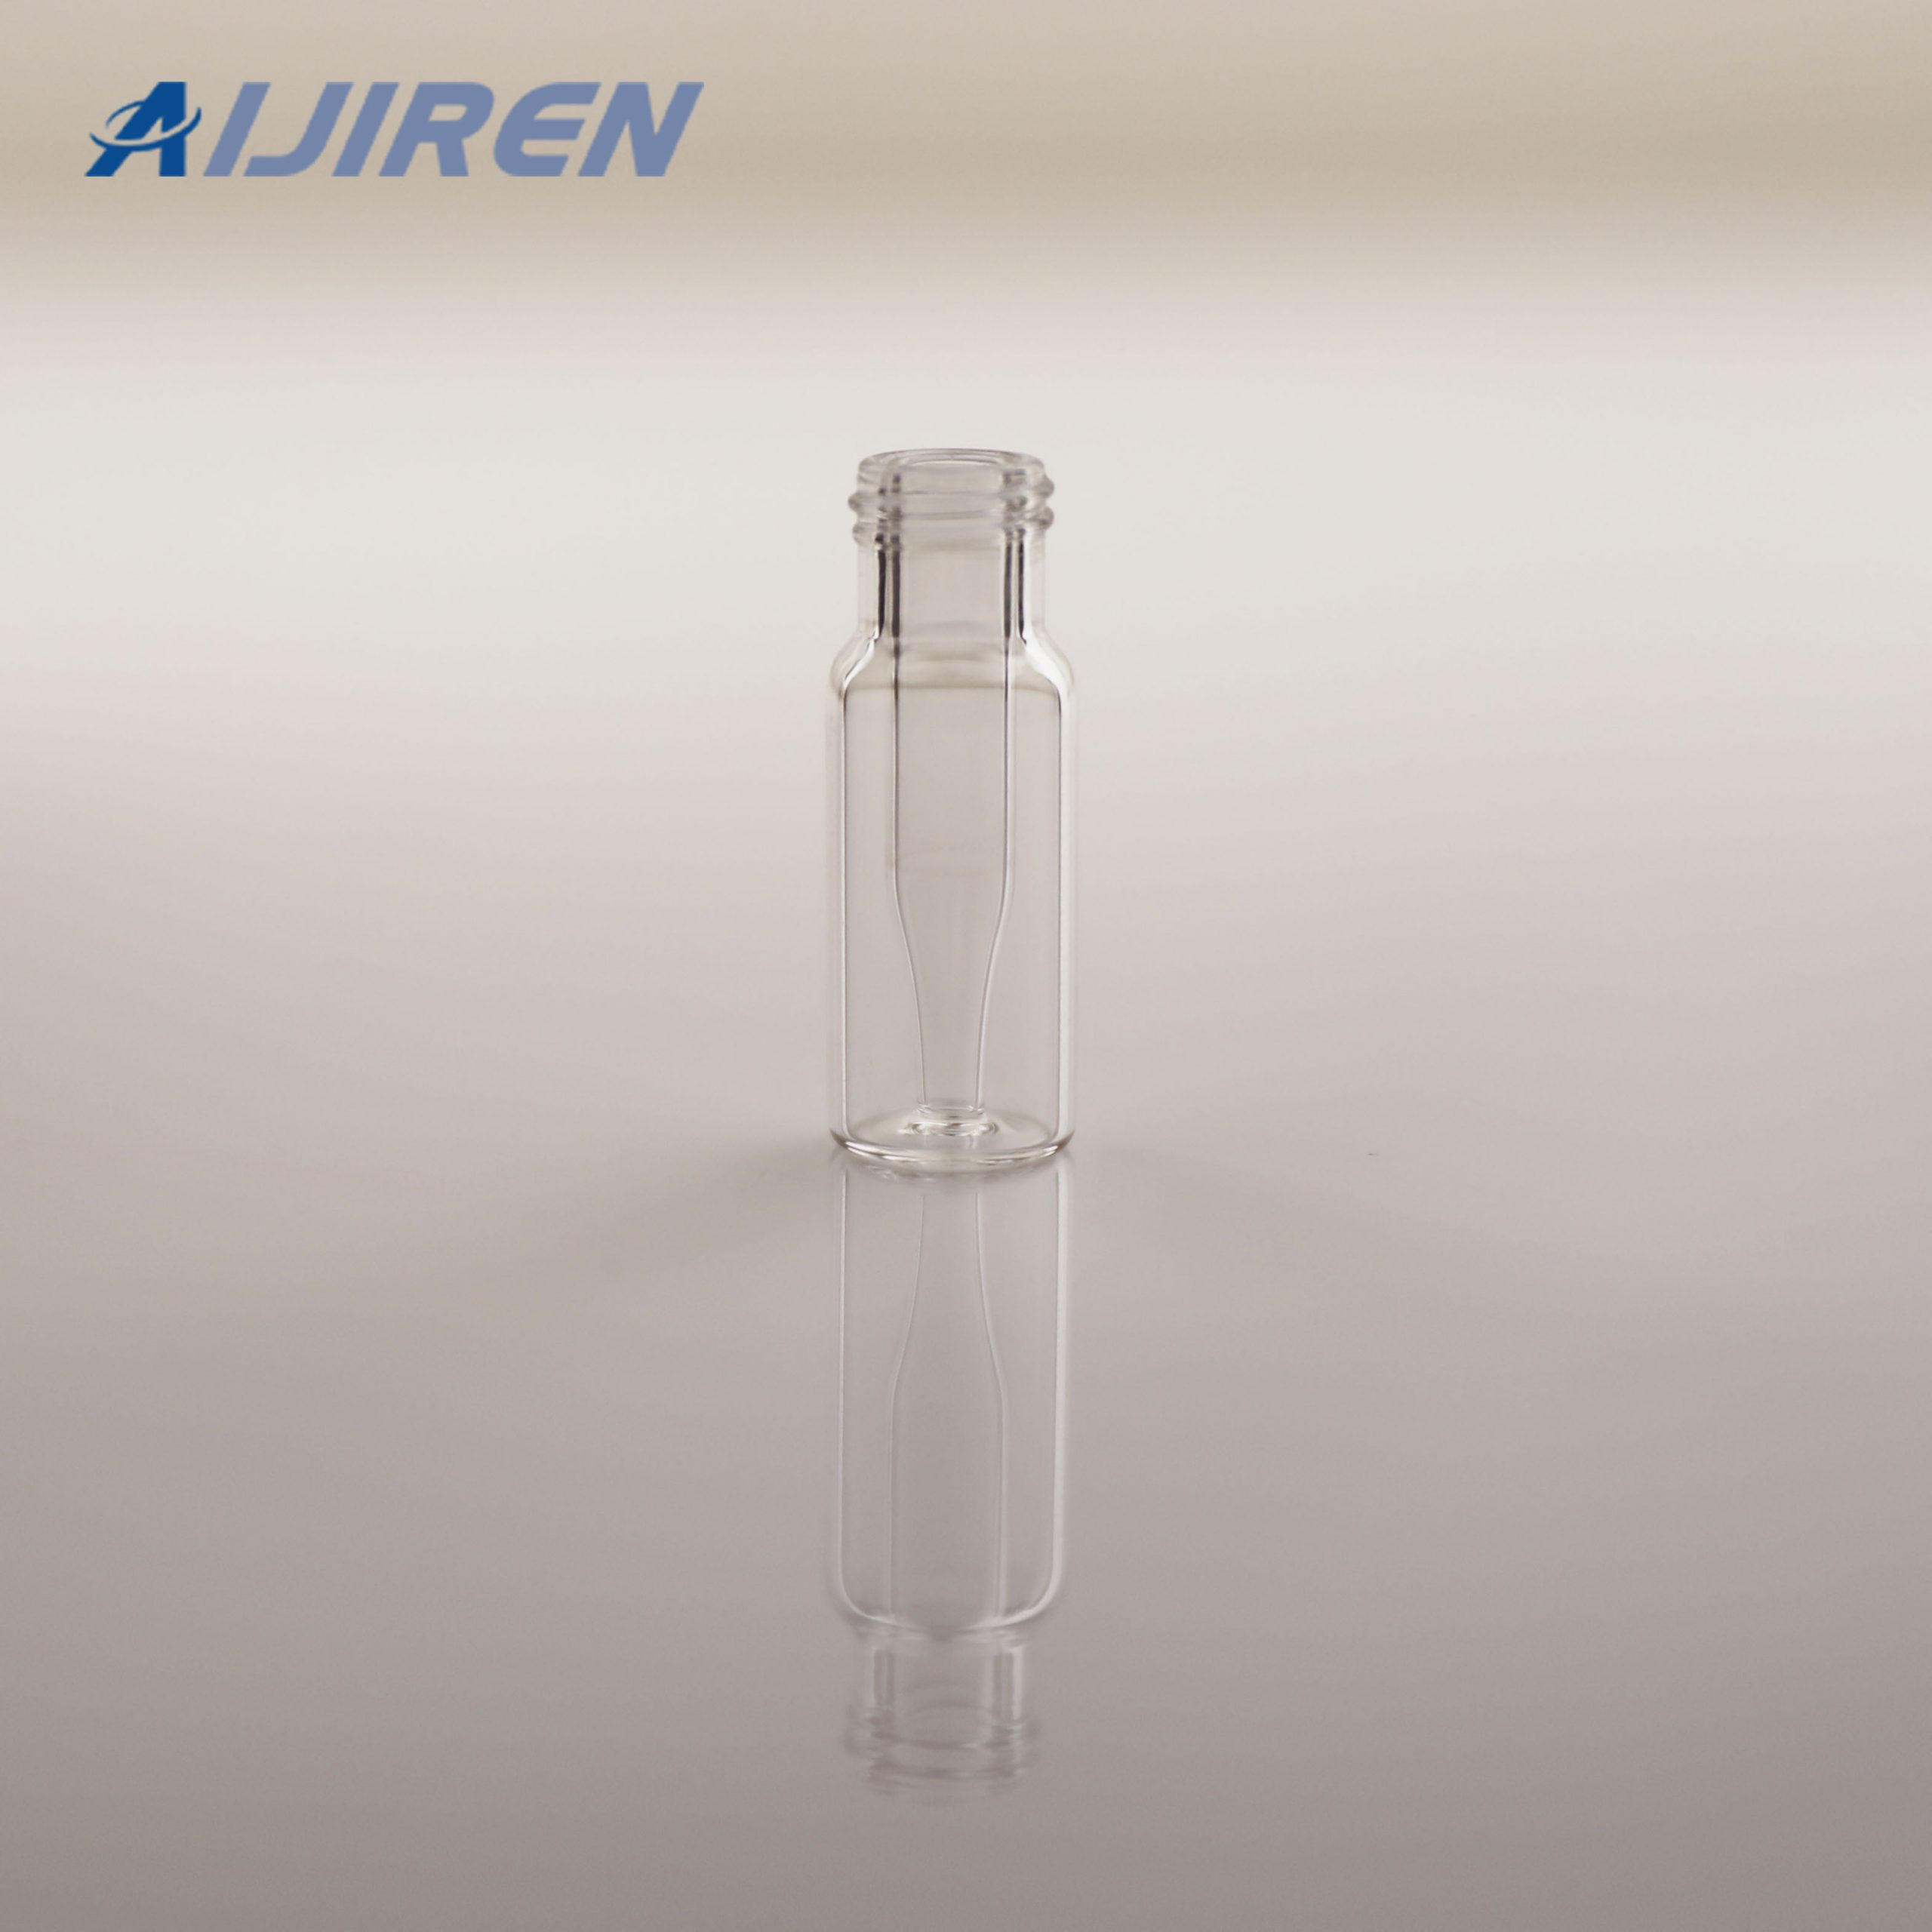 20ml headspace vial0.3ml Micro-Insert suit for 9mm HPLC Vial from Aijiren